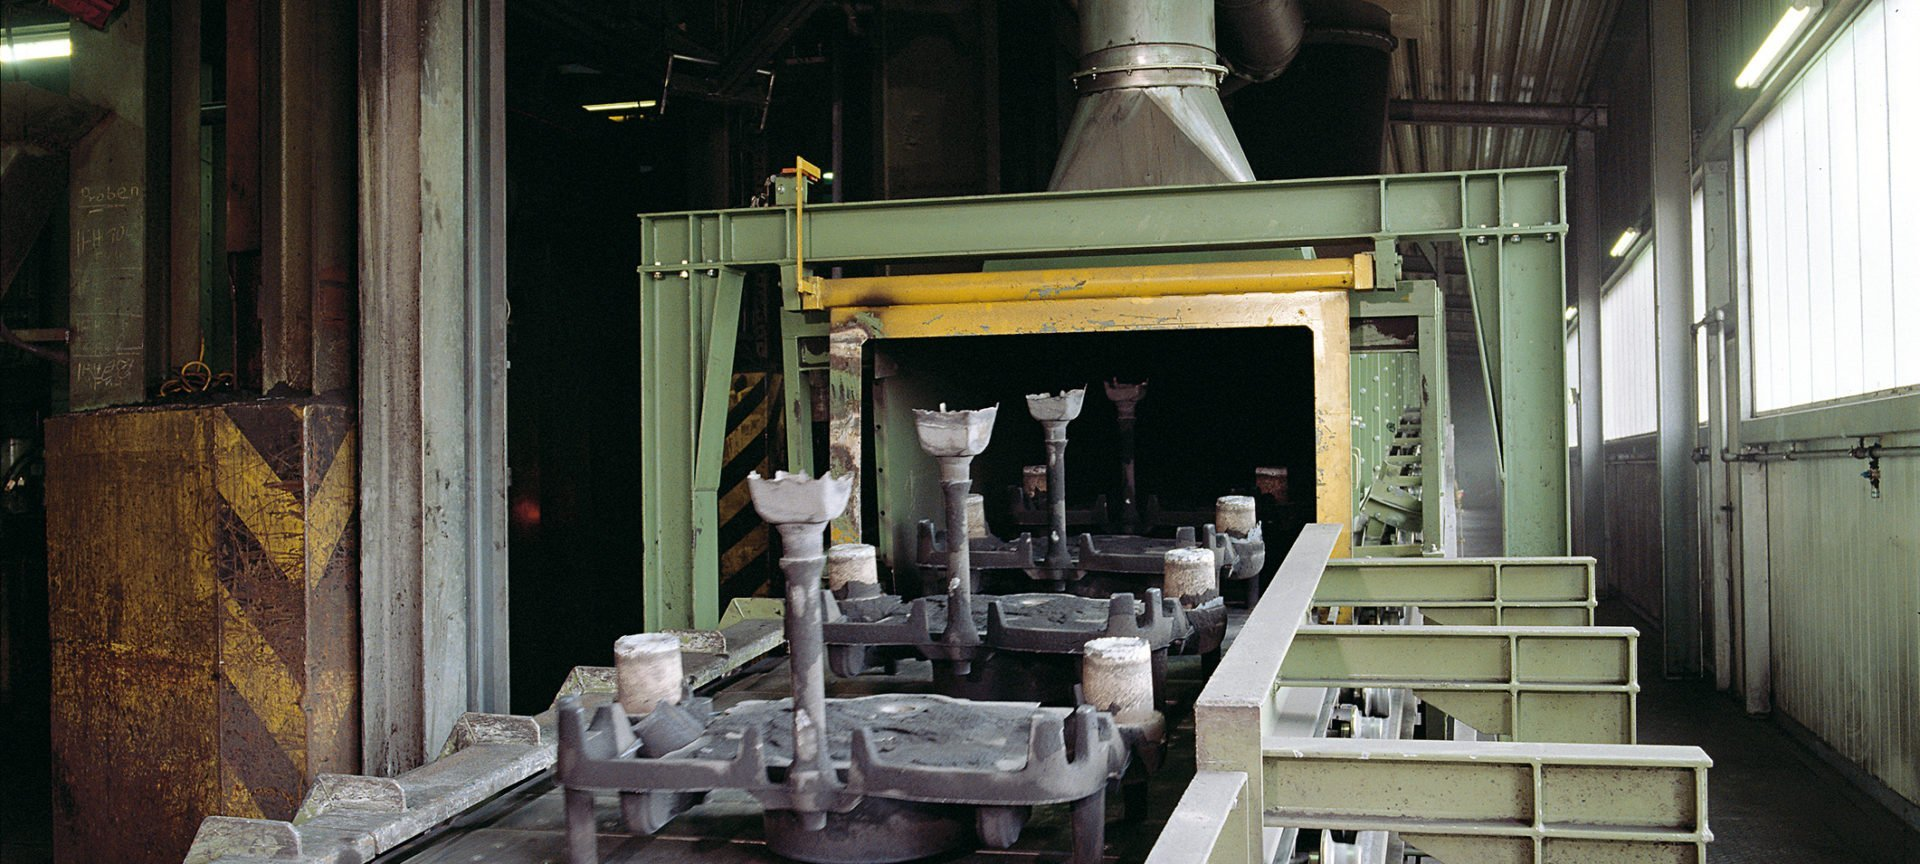 AUMUND Group Foundries